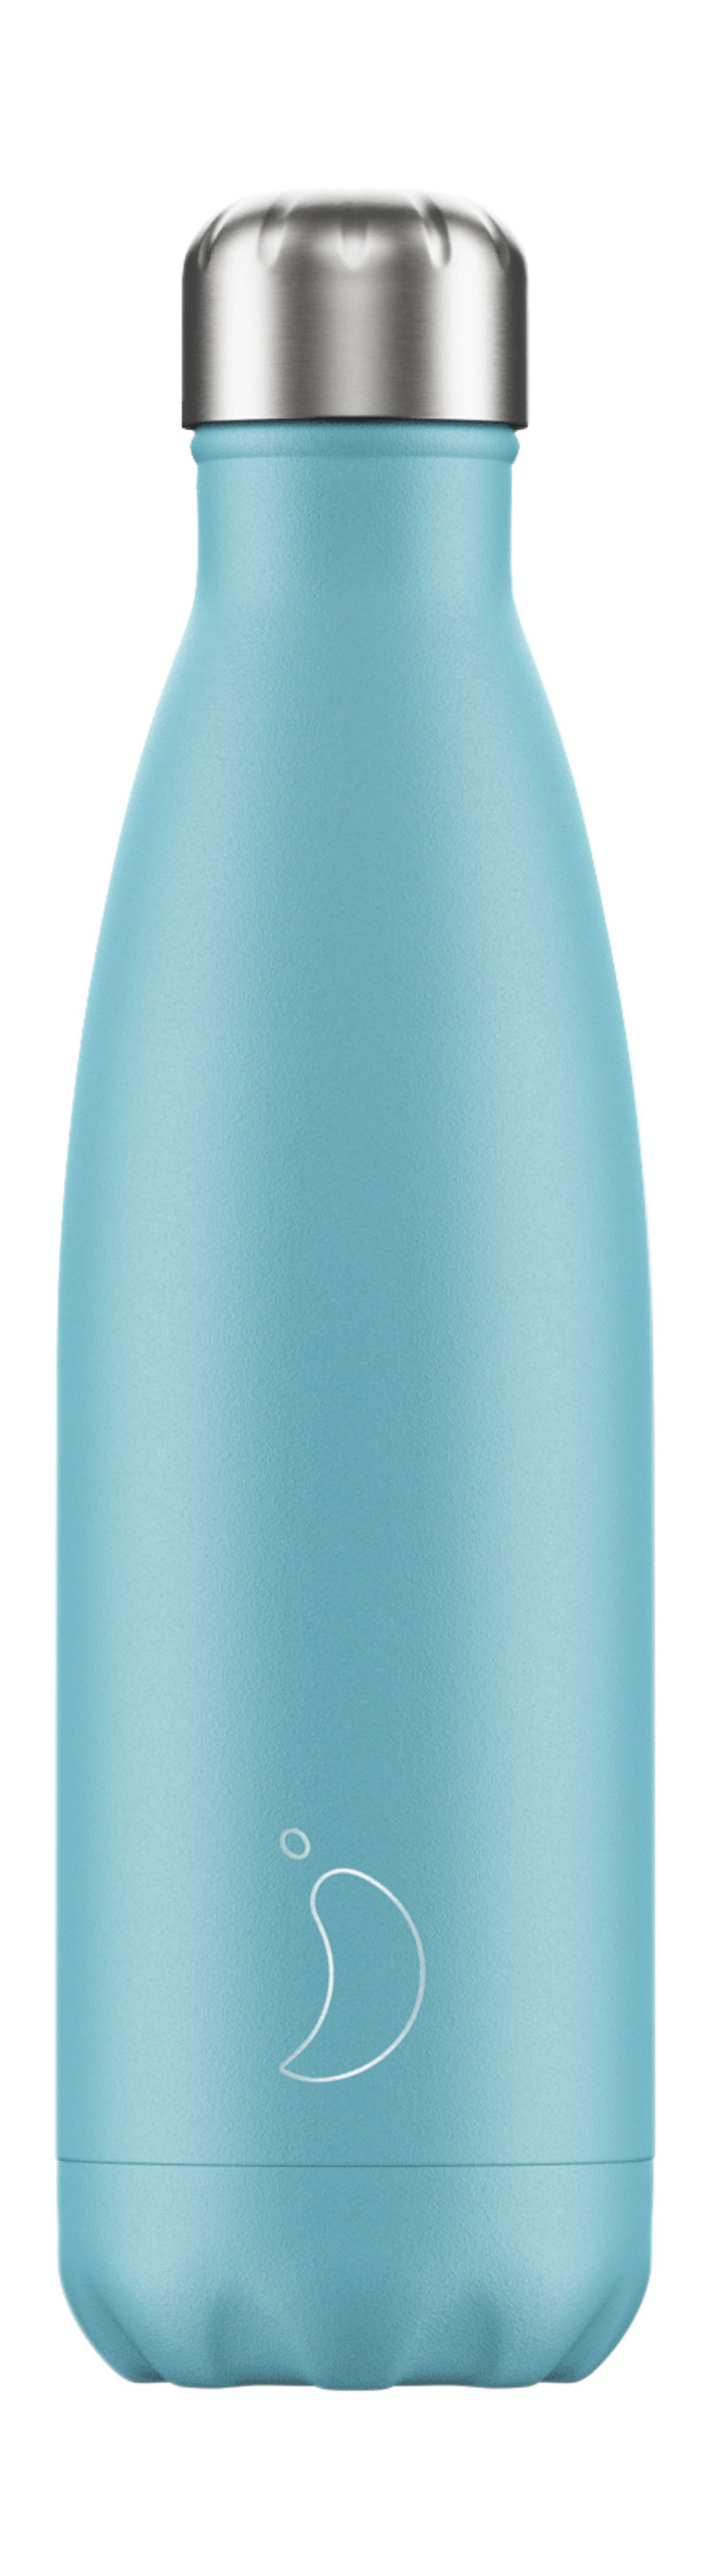 BOTELLA INOX AZUL PASTEL 500ML